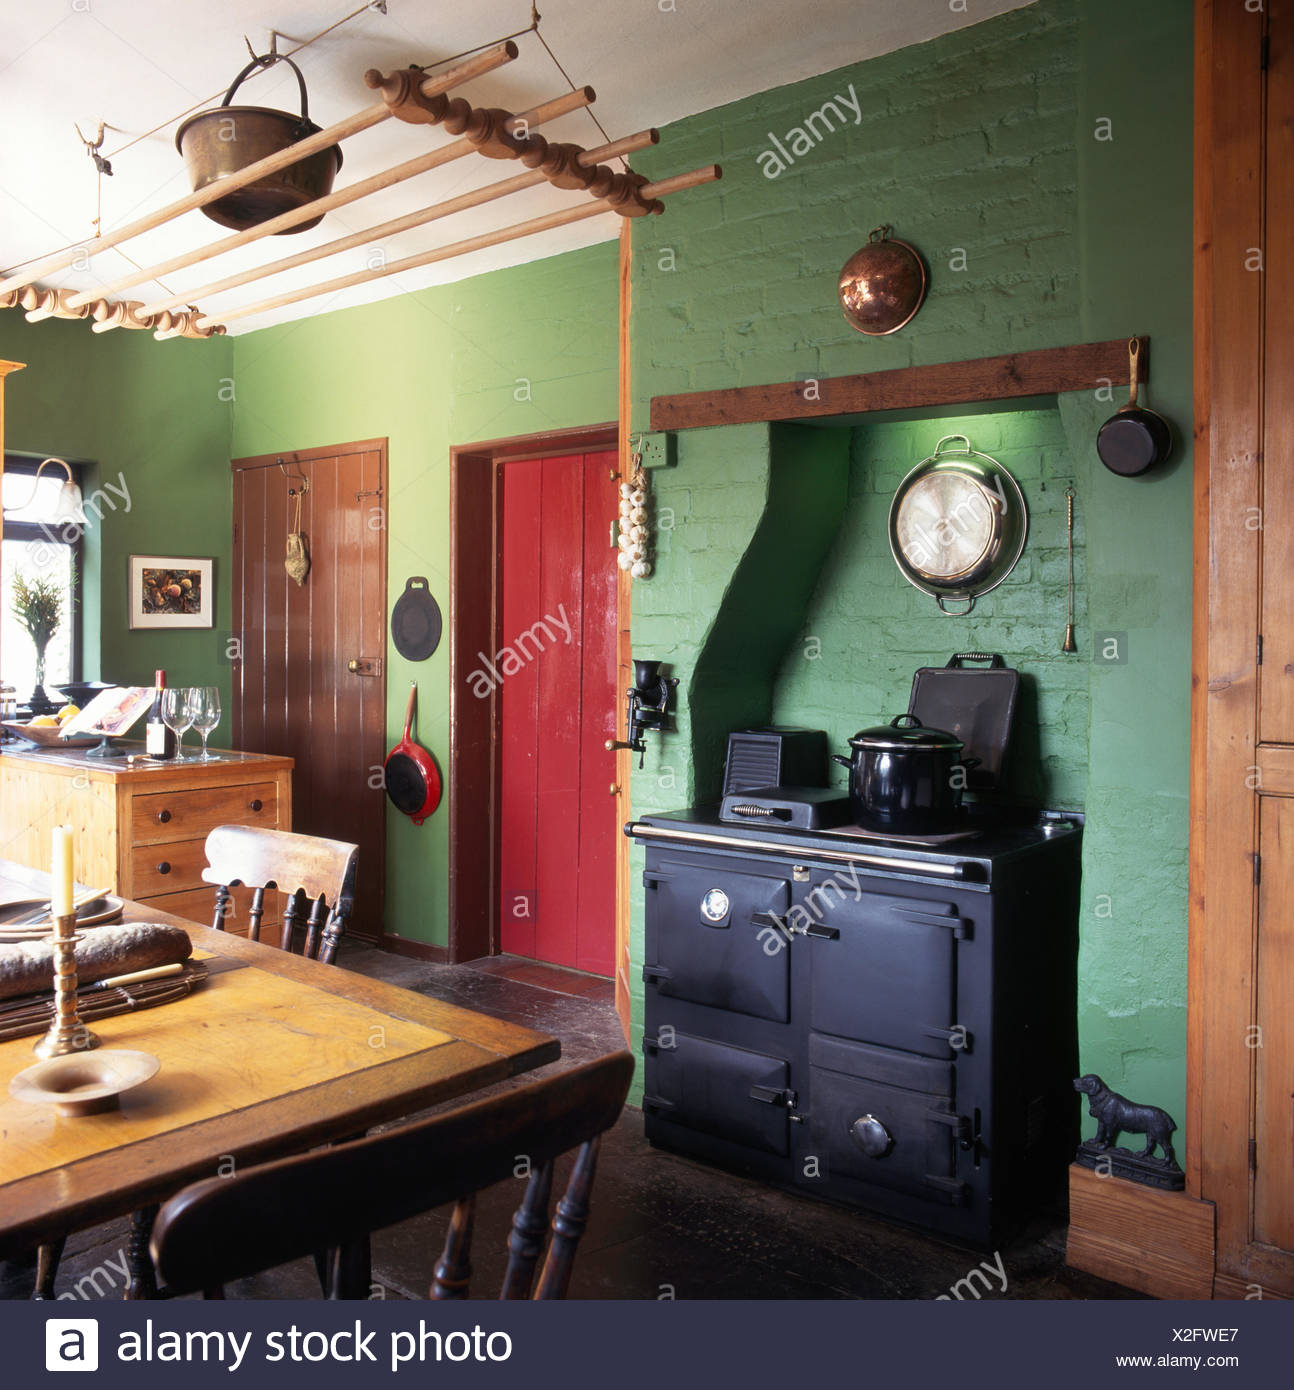 Black Range Oven In Green Country Kitchen With A Vintage ...